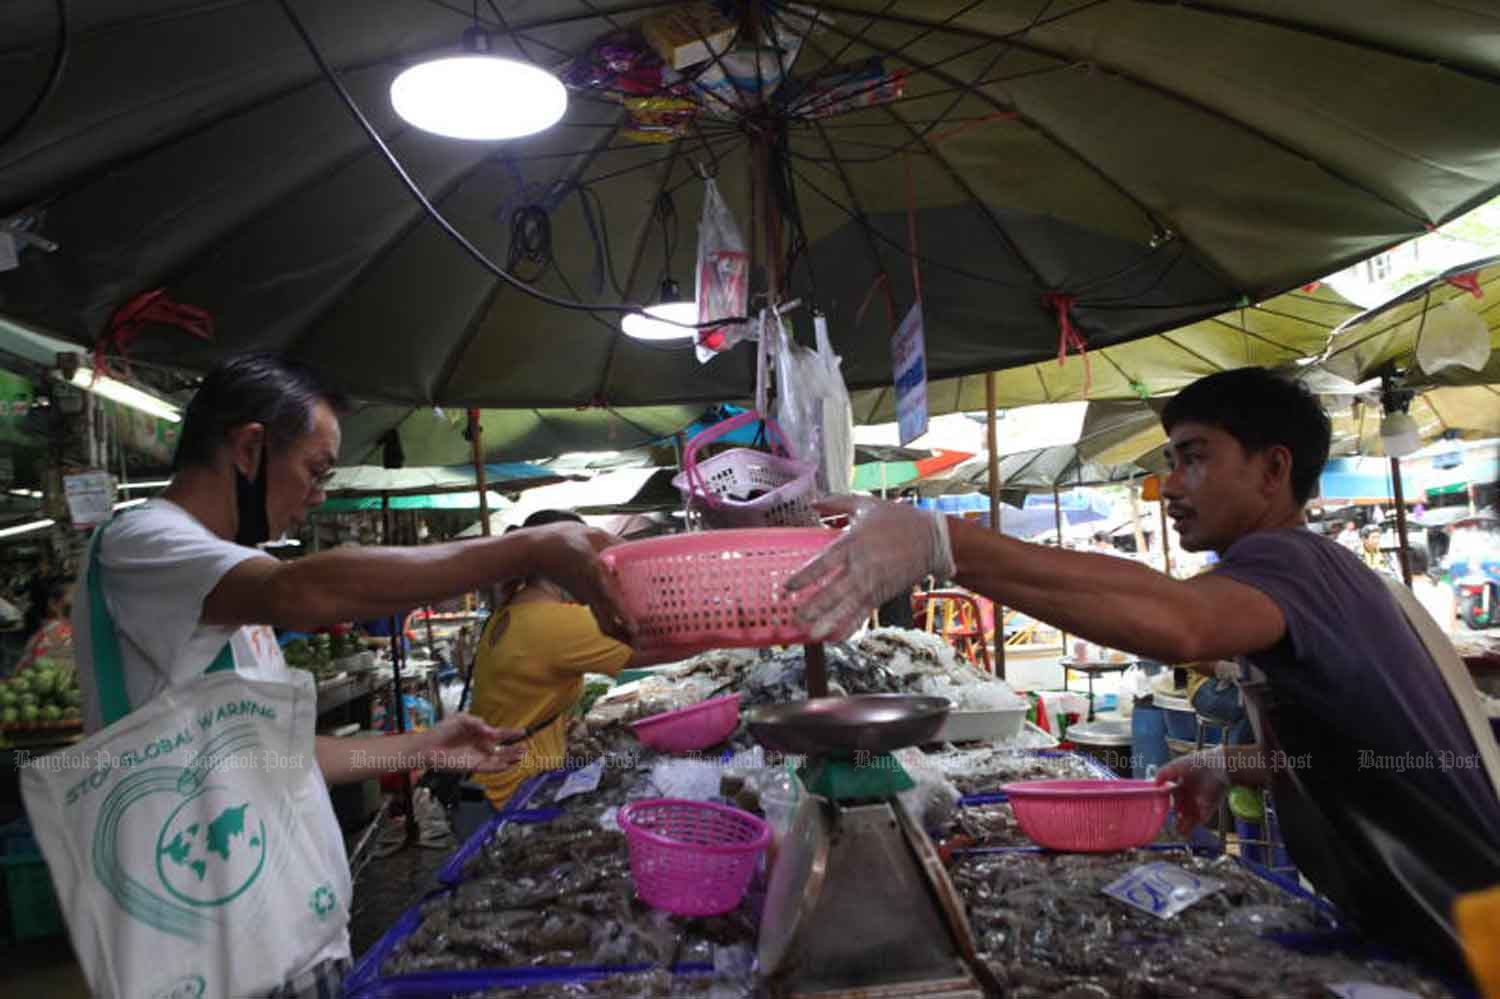 Some vendors and customers remove face masks at Wong Wian Yai market in Bangkok on Thursday even though the government is asking people to wear them. Security officials say all businesses and activities will be allowed to resume in July. (Photo by Arnun Chonmahatrakool)